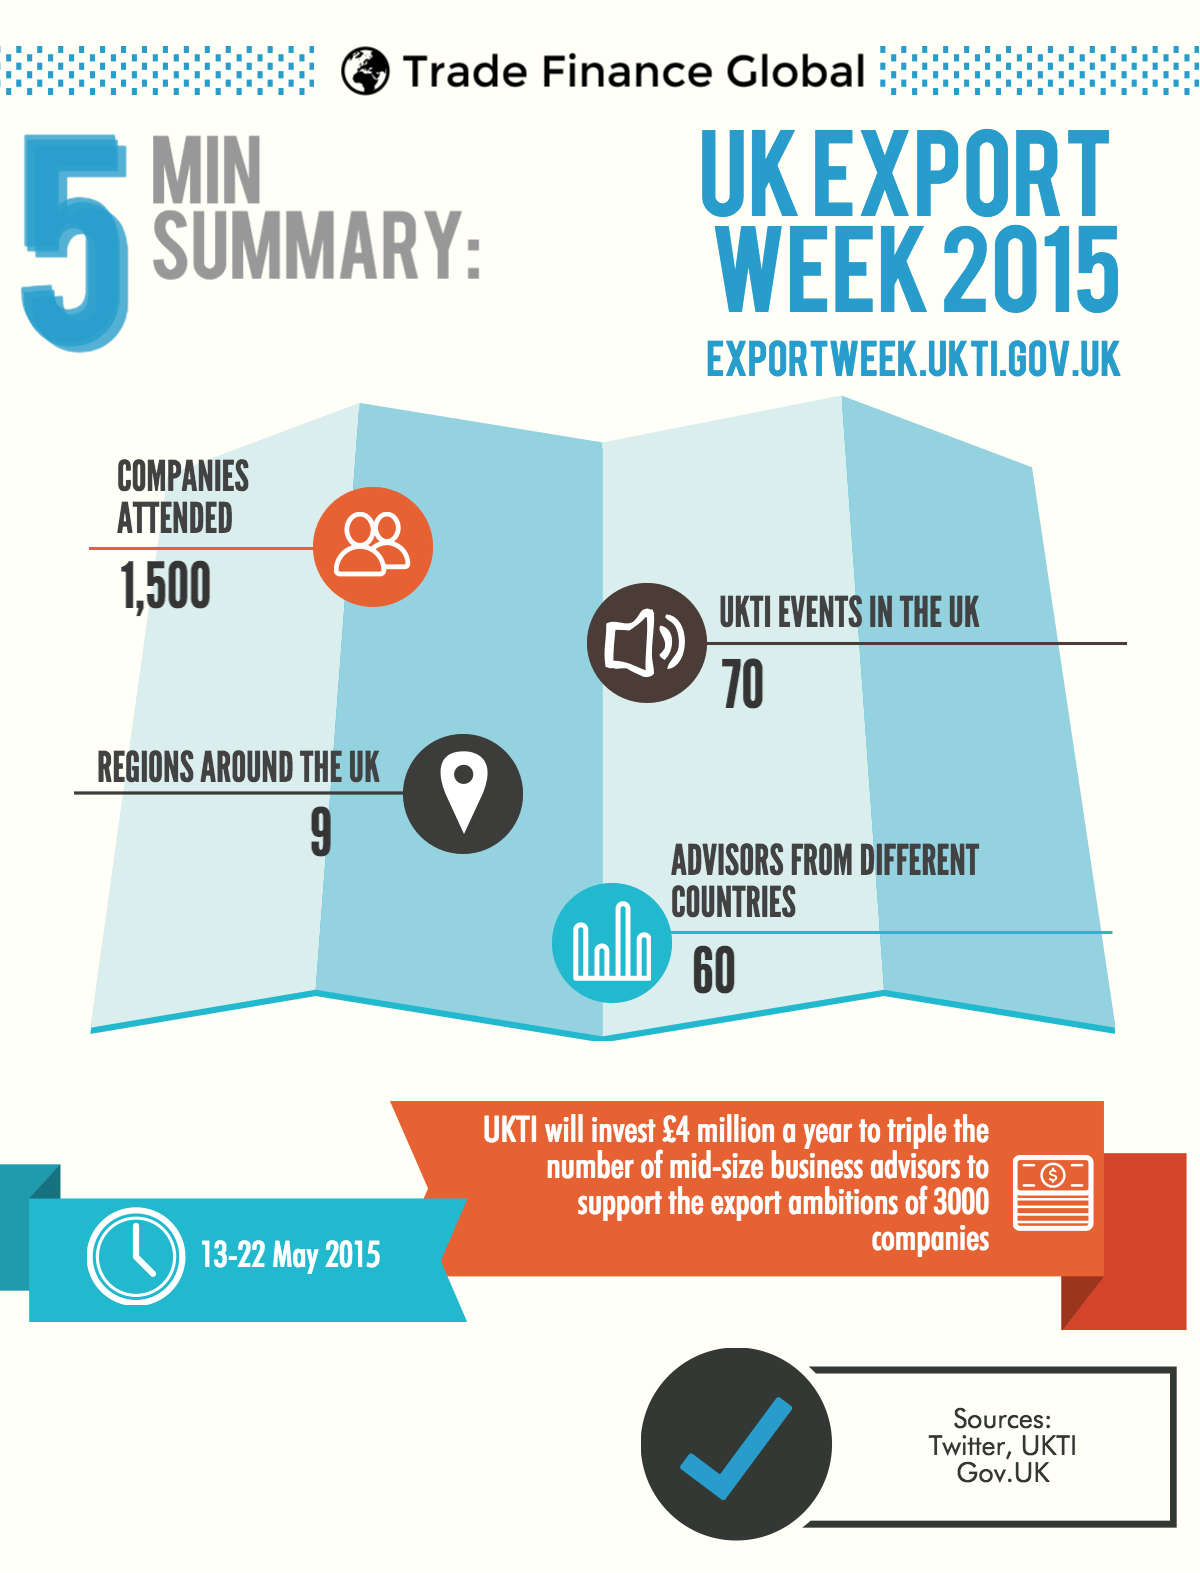 UK Brief Summary #exportweek